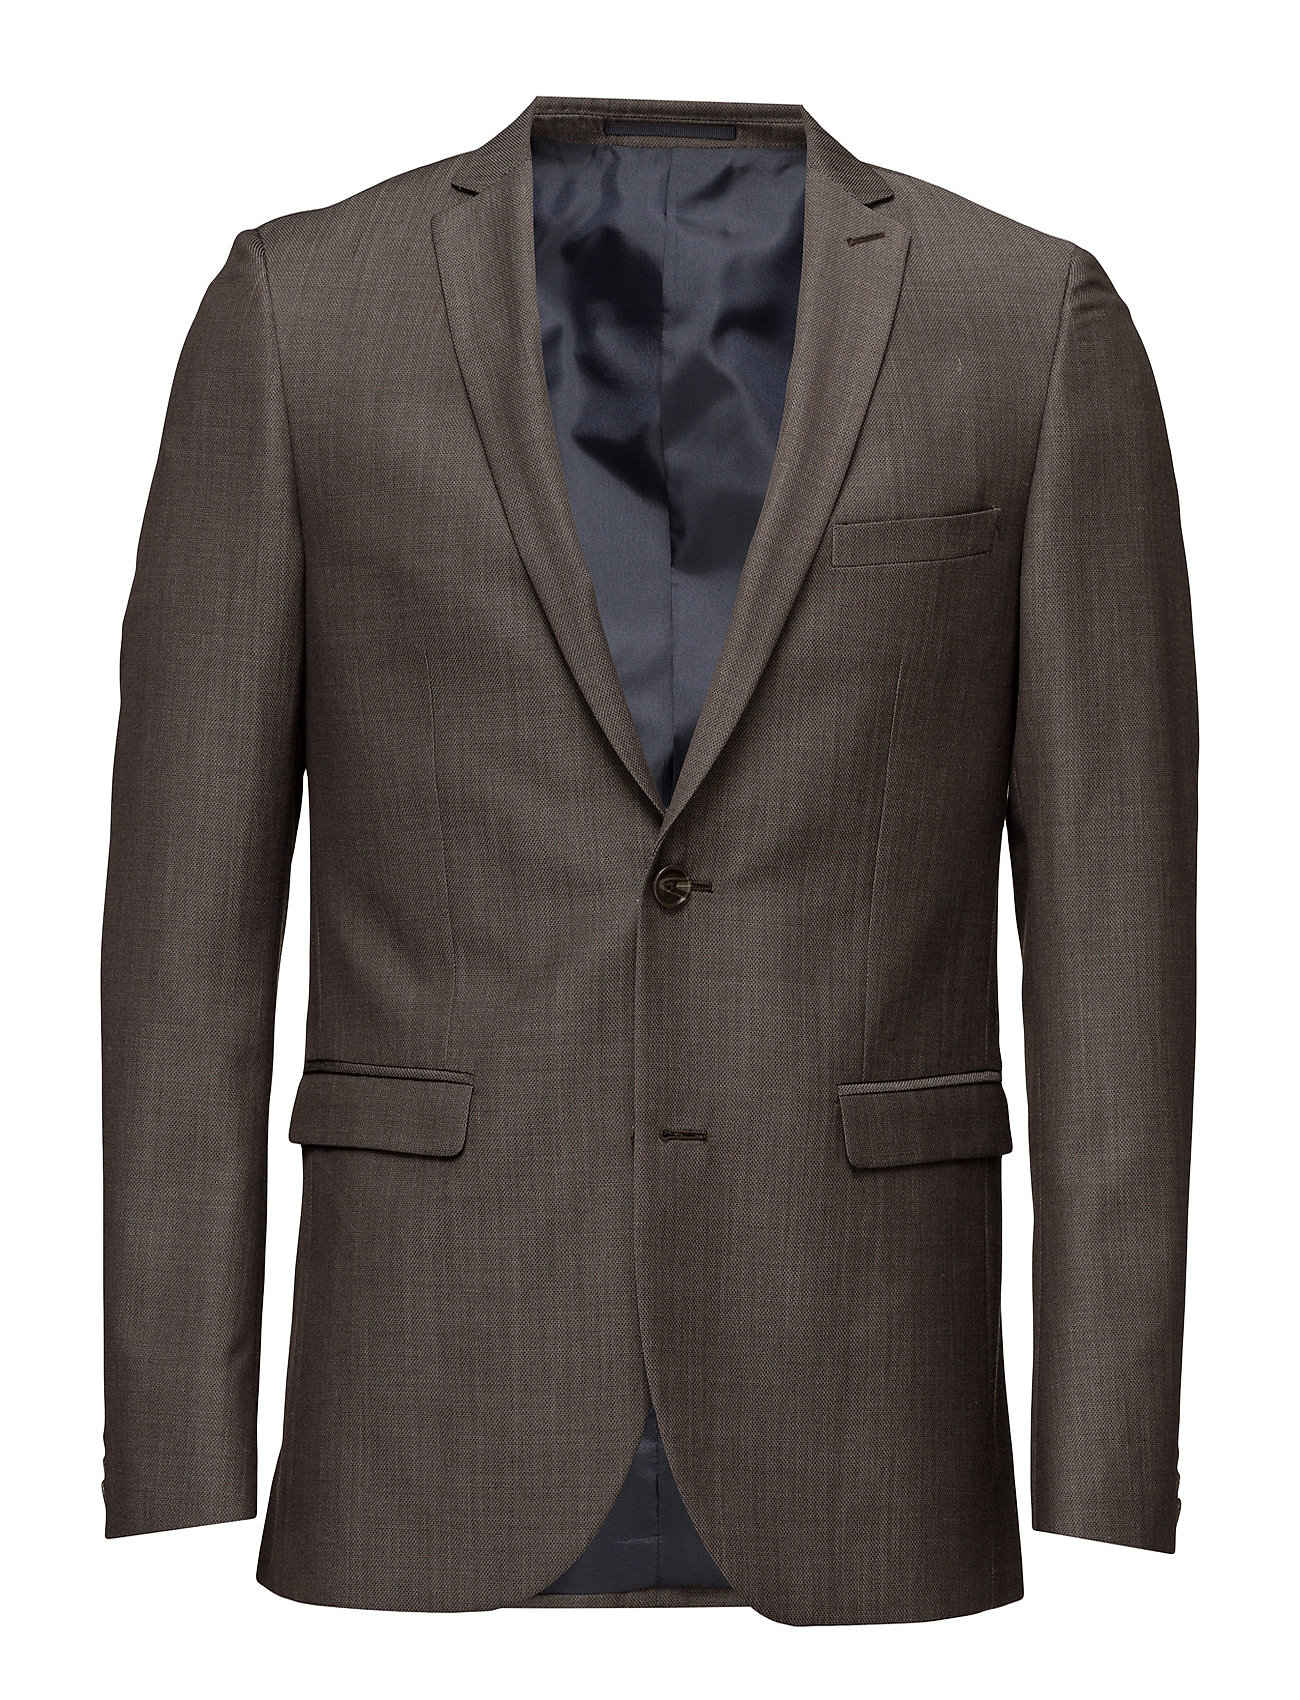 George F Beech Suit Matinique Kavajer